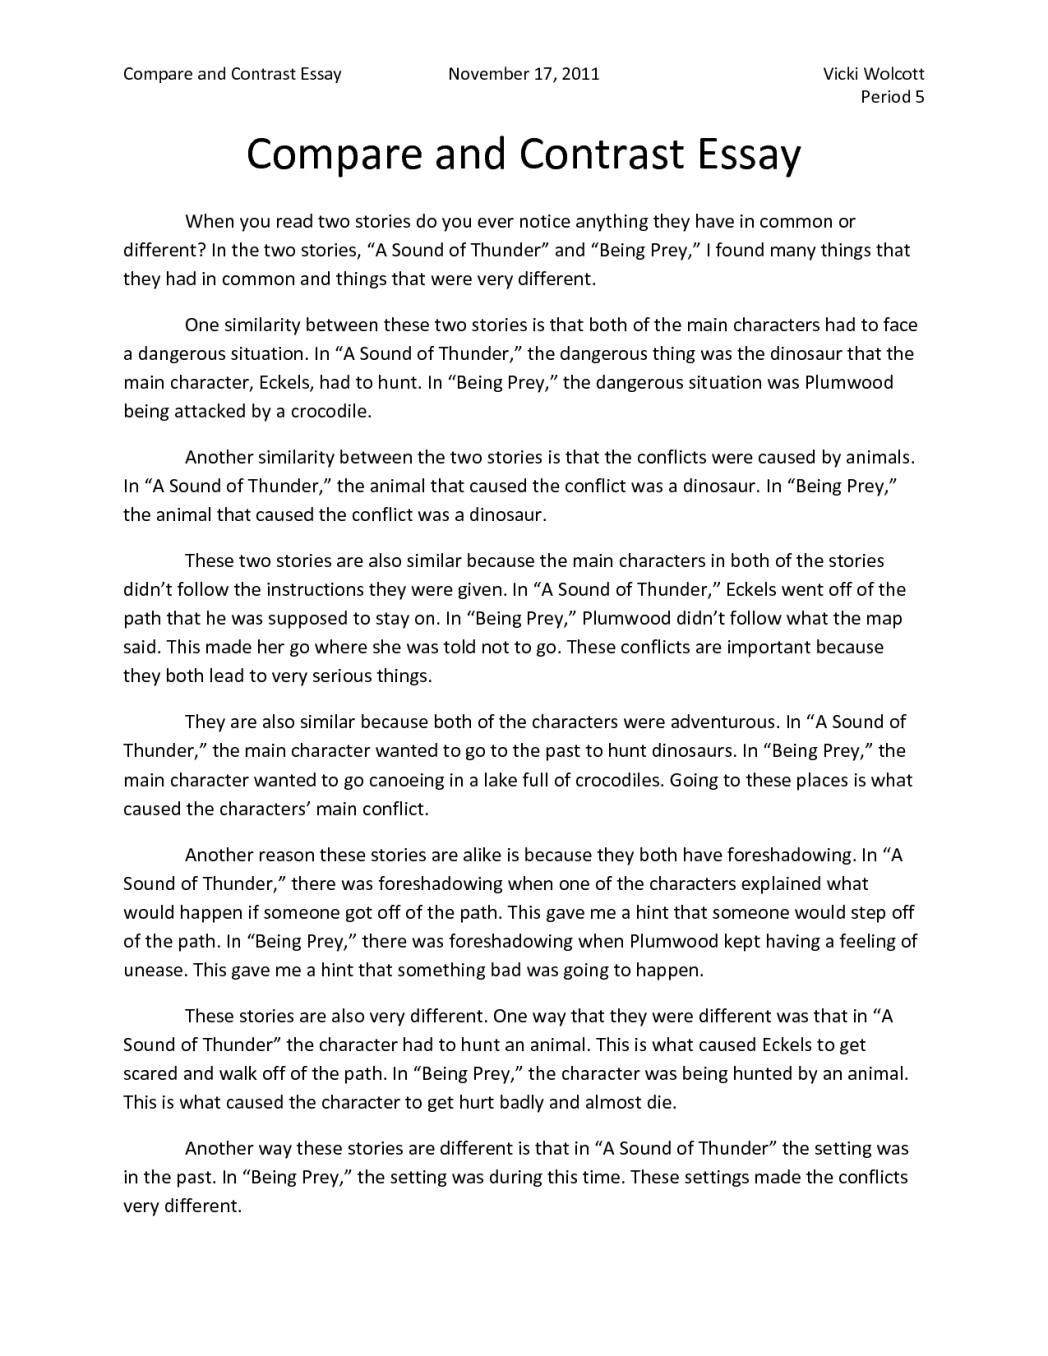 020 Argumentative Essay Topics For Proposal On Immigration Laws Compare And Contrast 1048x1356 Wonderful Illegal Full